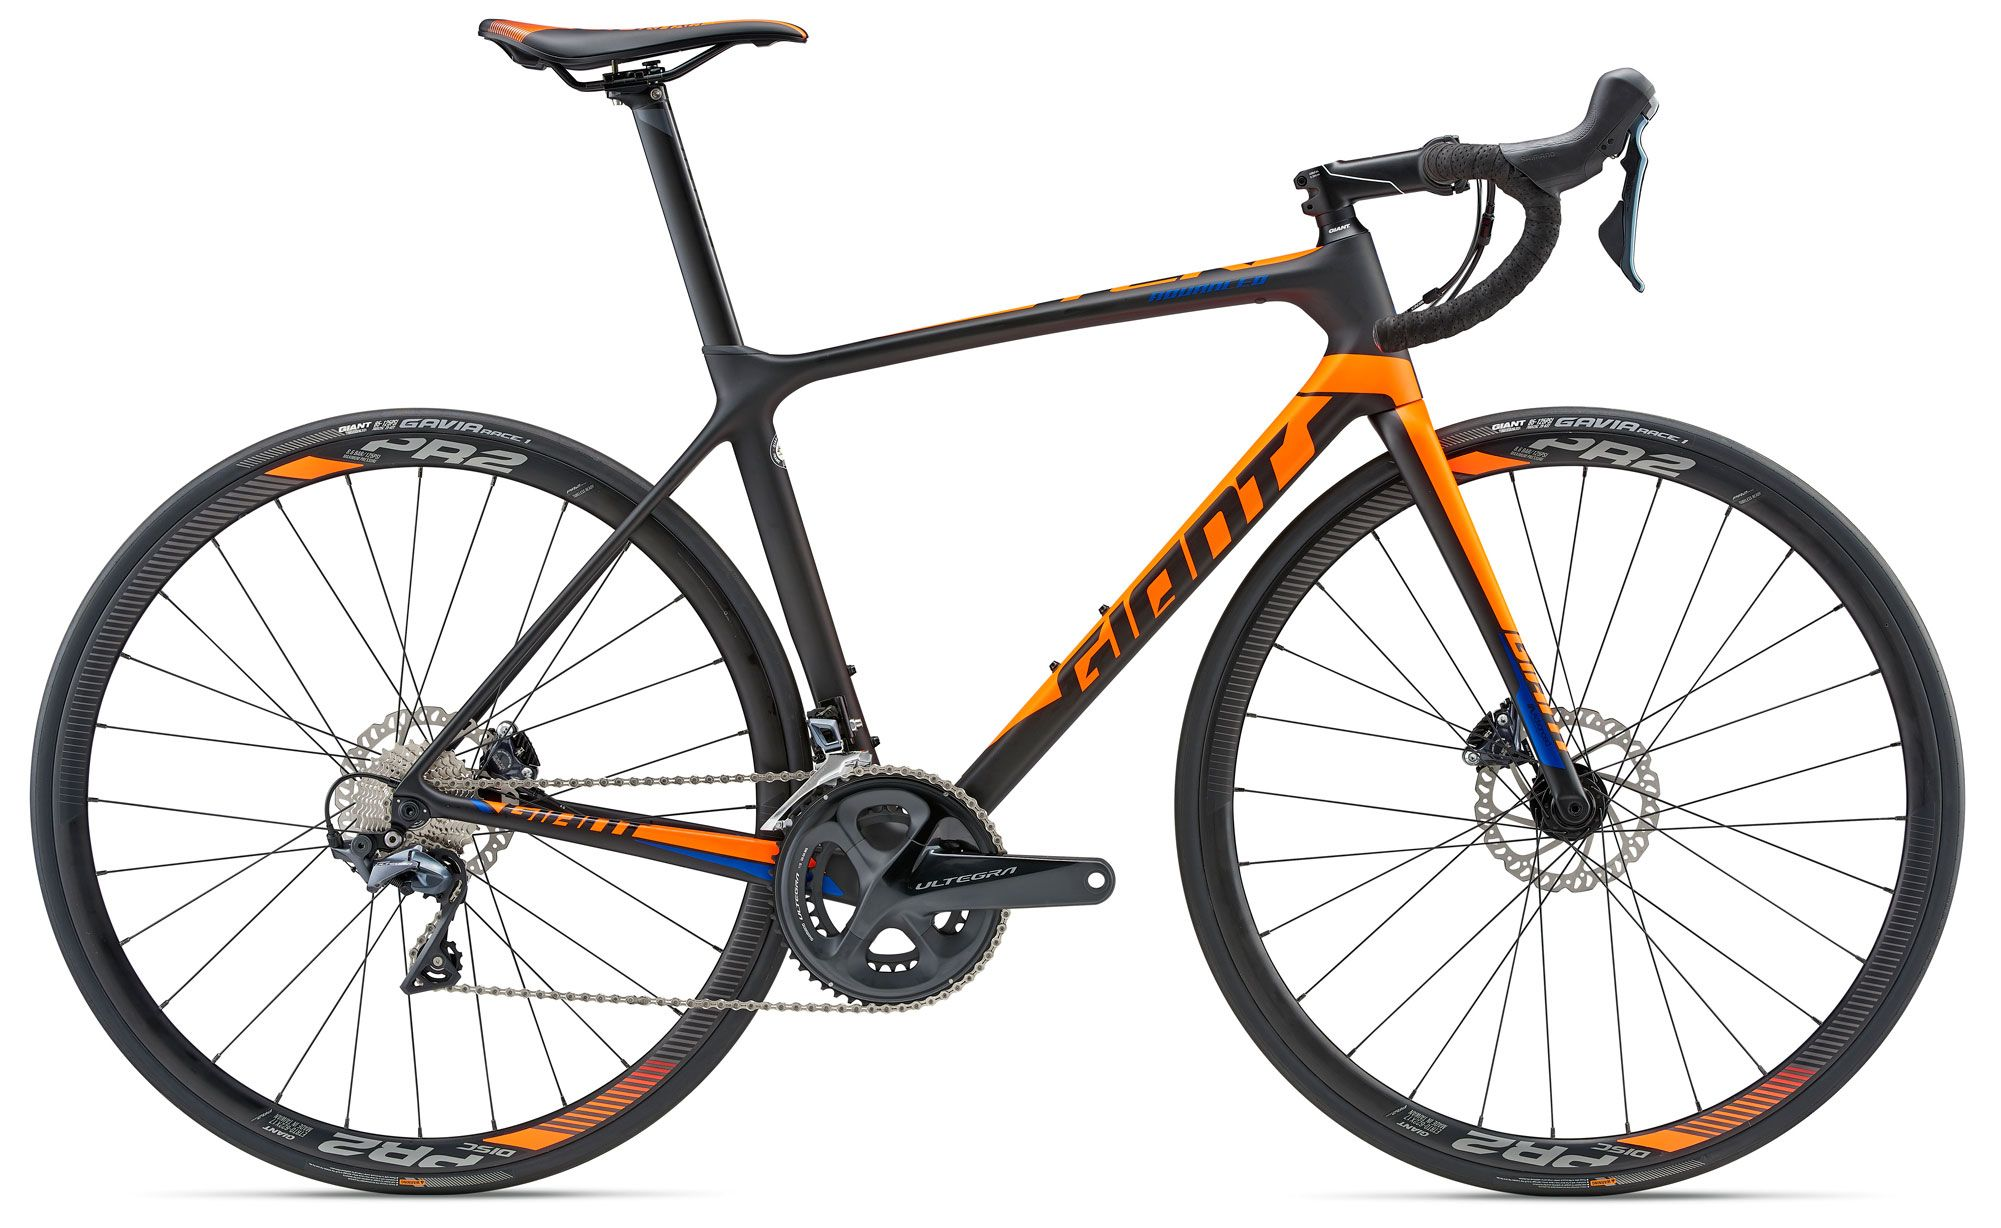 Велосипед Giant TCR Advanced 1 Disc 2018 велосипед giant defy advanced pro 0 compact 2015